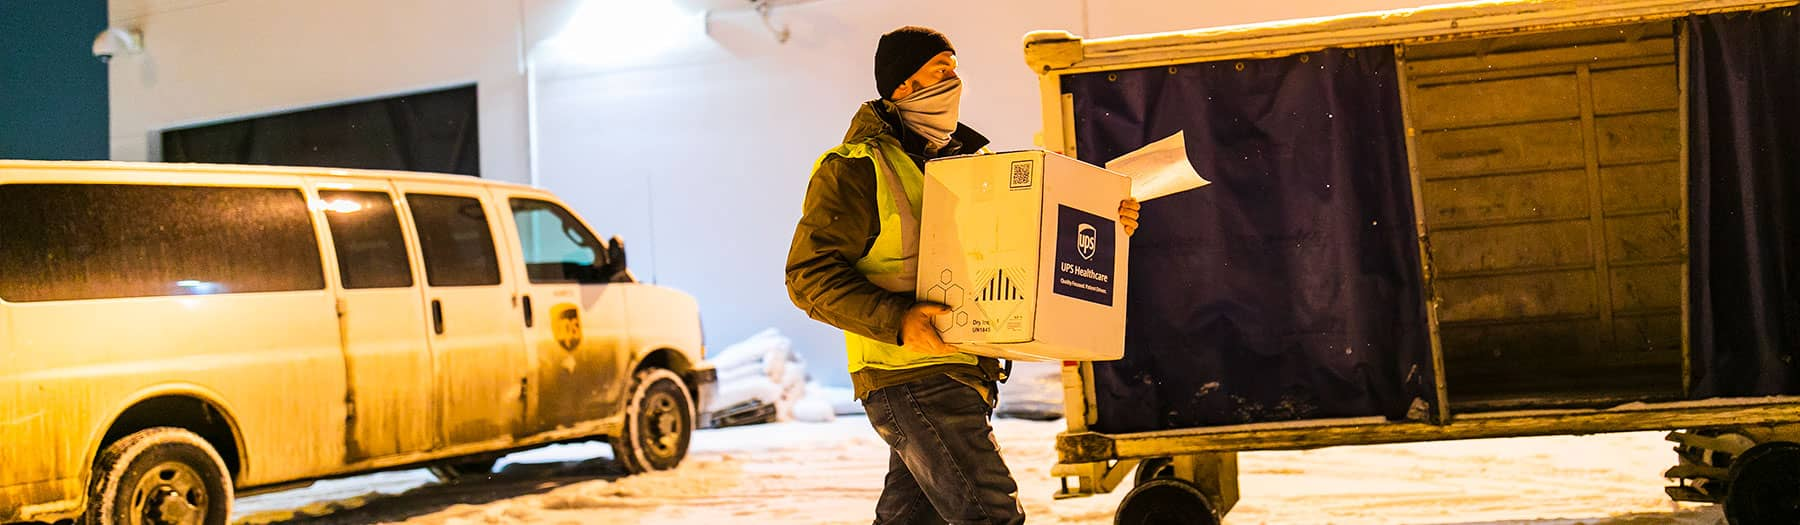 BlackWing client Alaska Air Cargo delivers first COVID-19 vaccines in the state of Alaska.